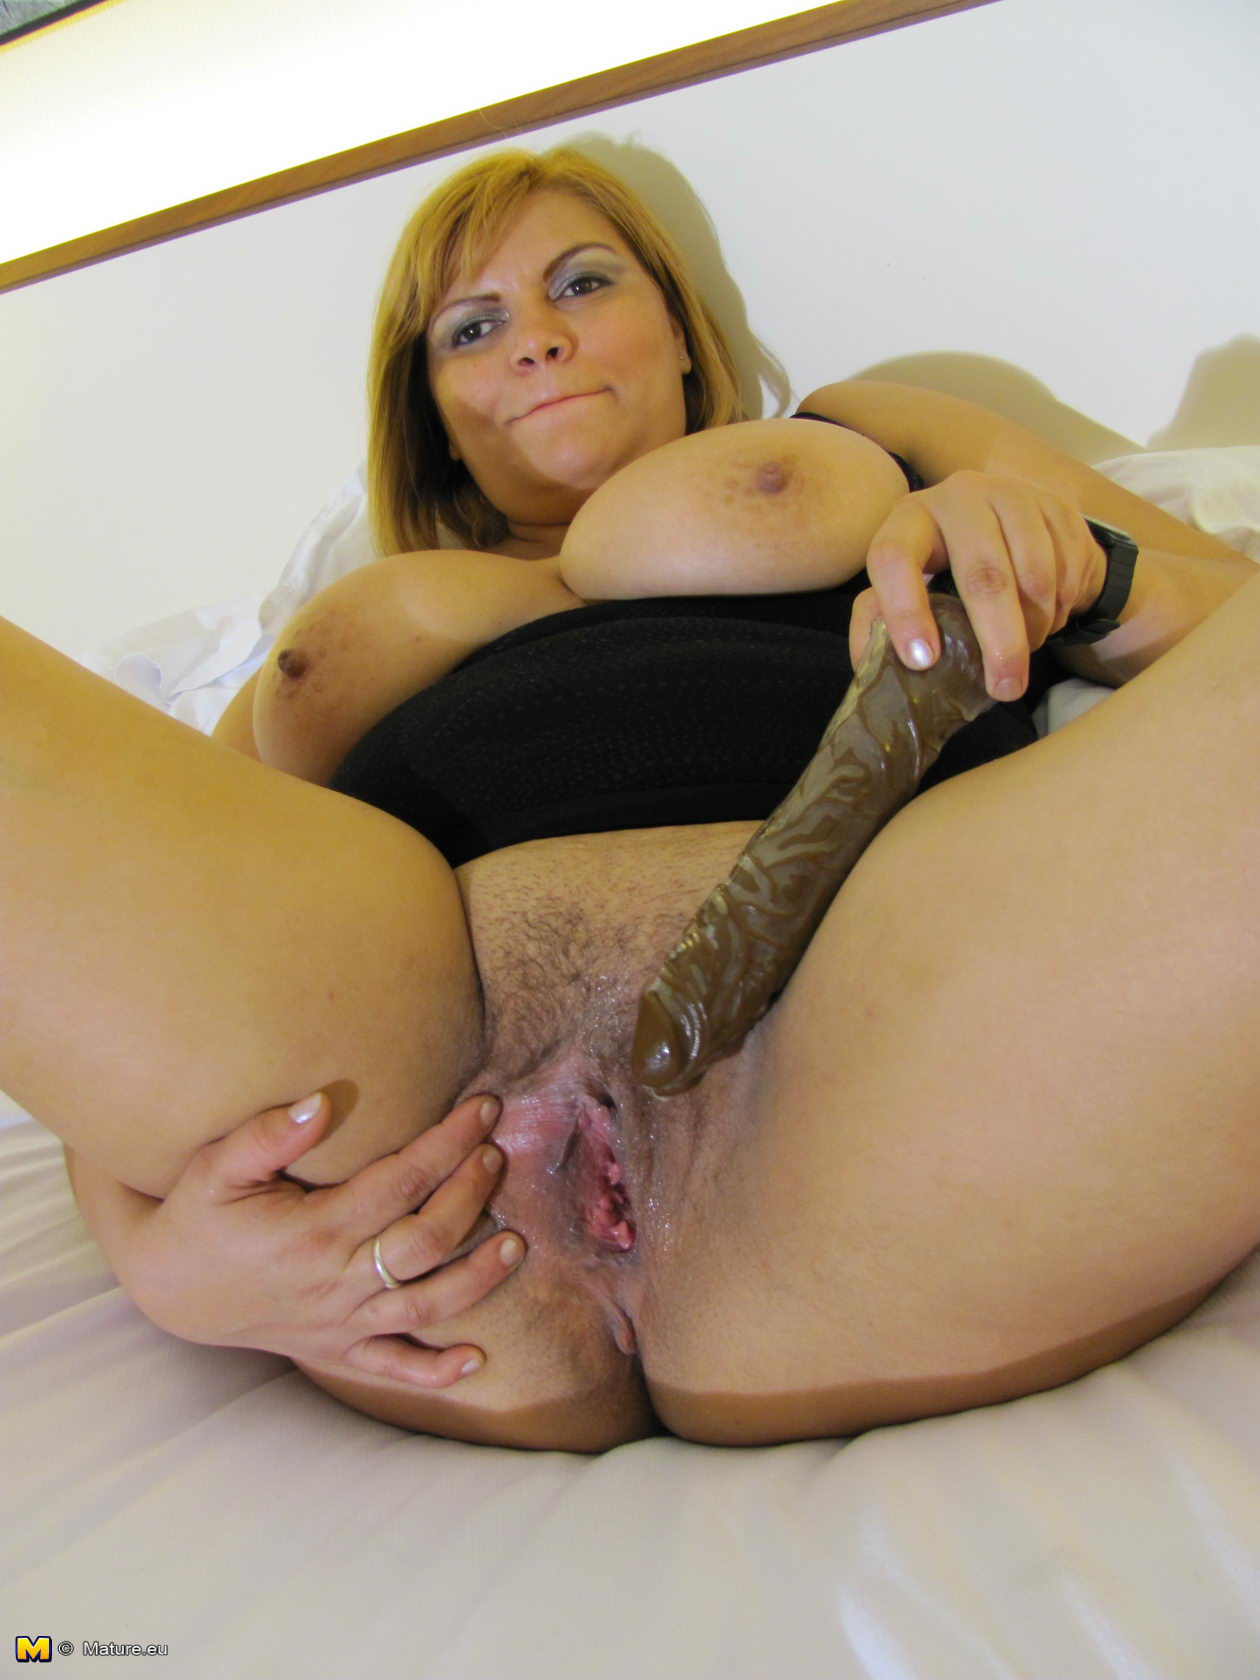 sexy girlscute pics naked ejaculation